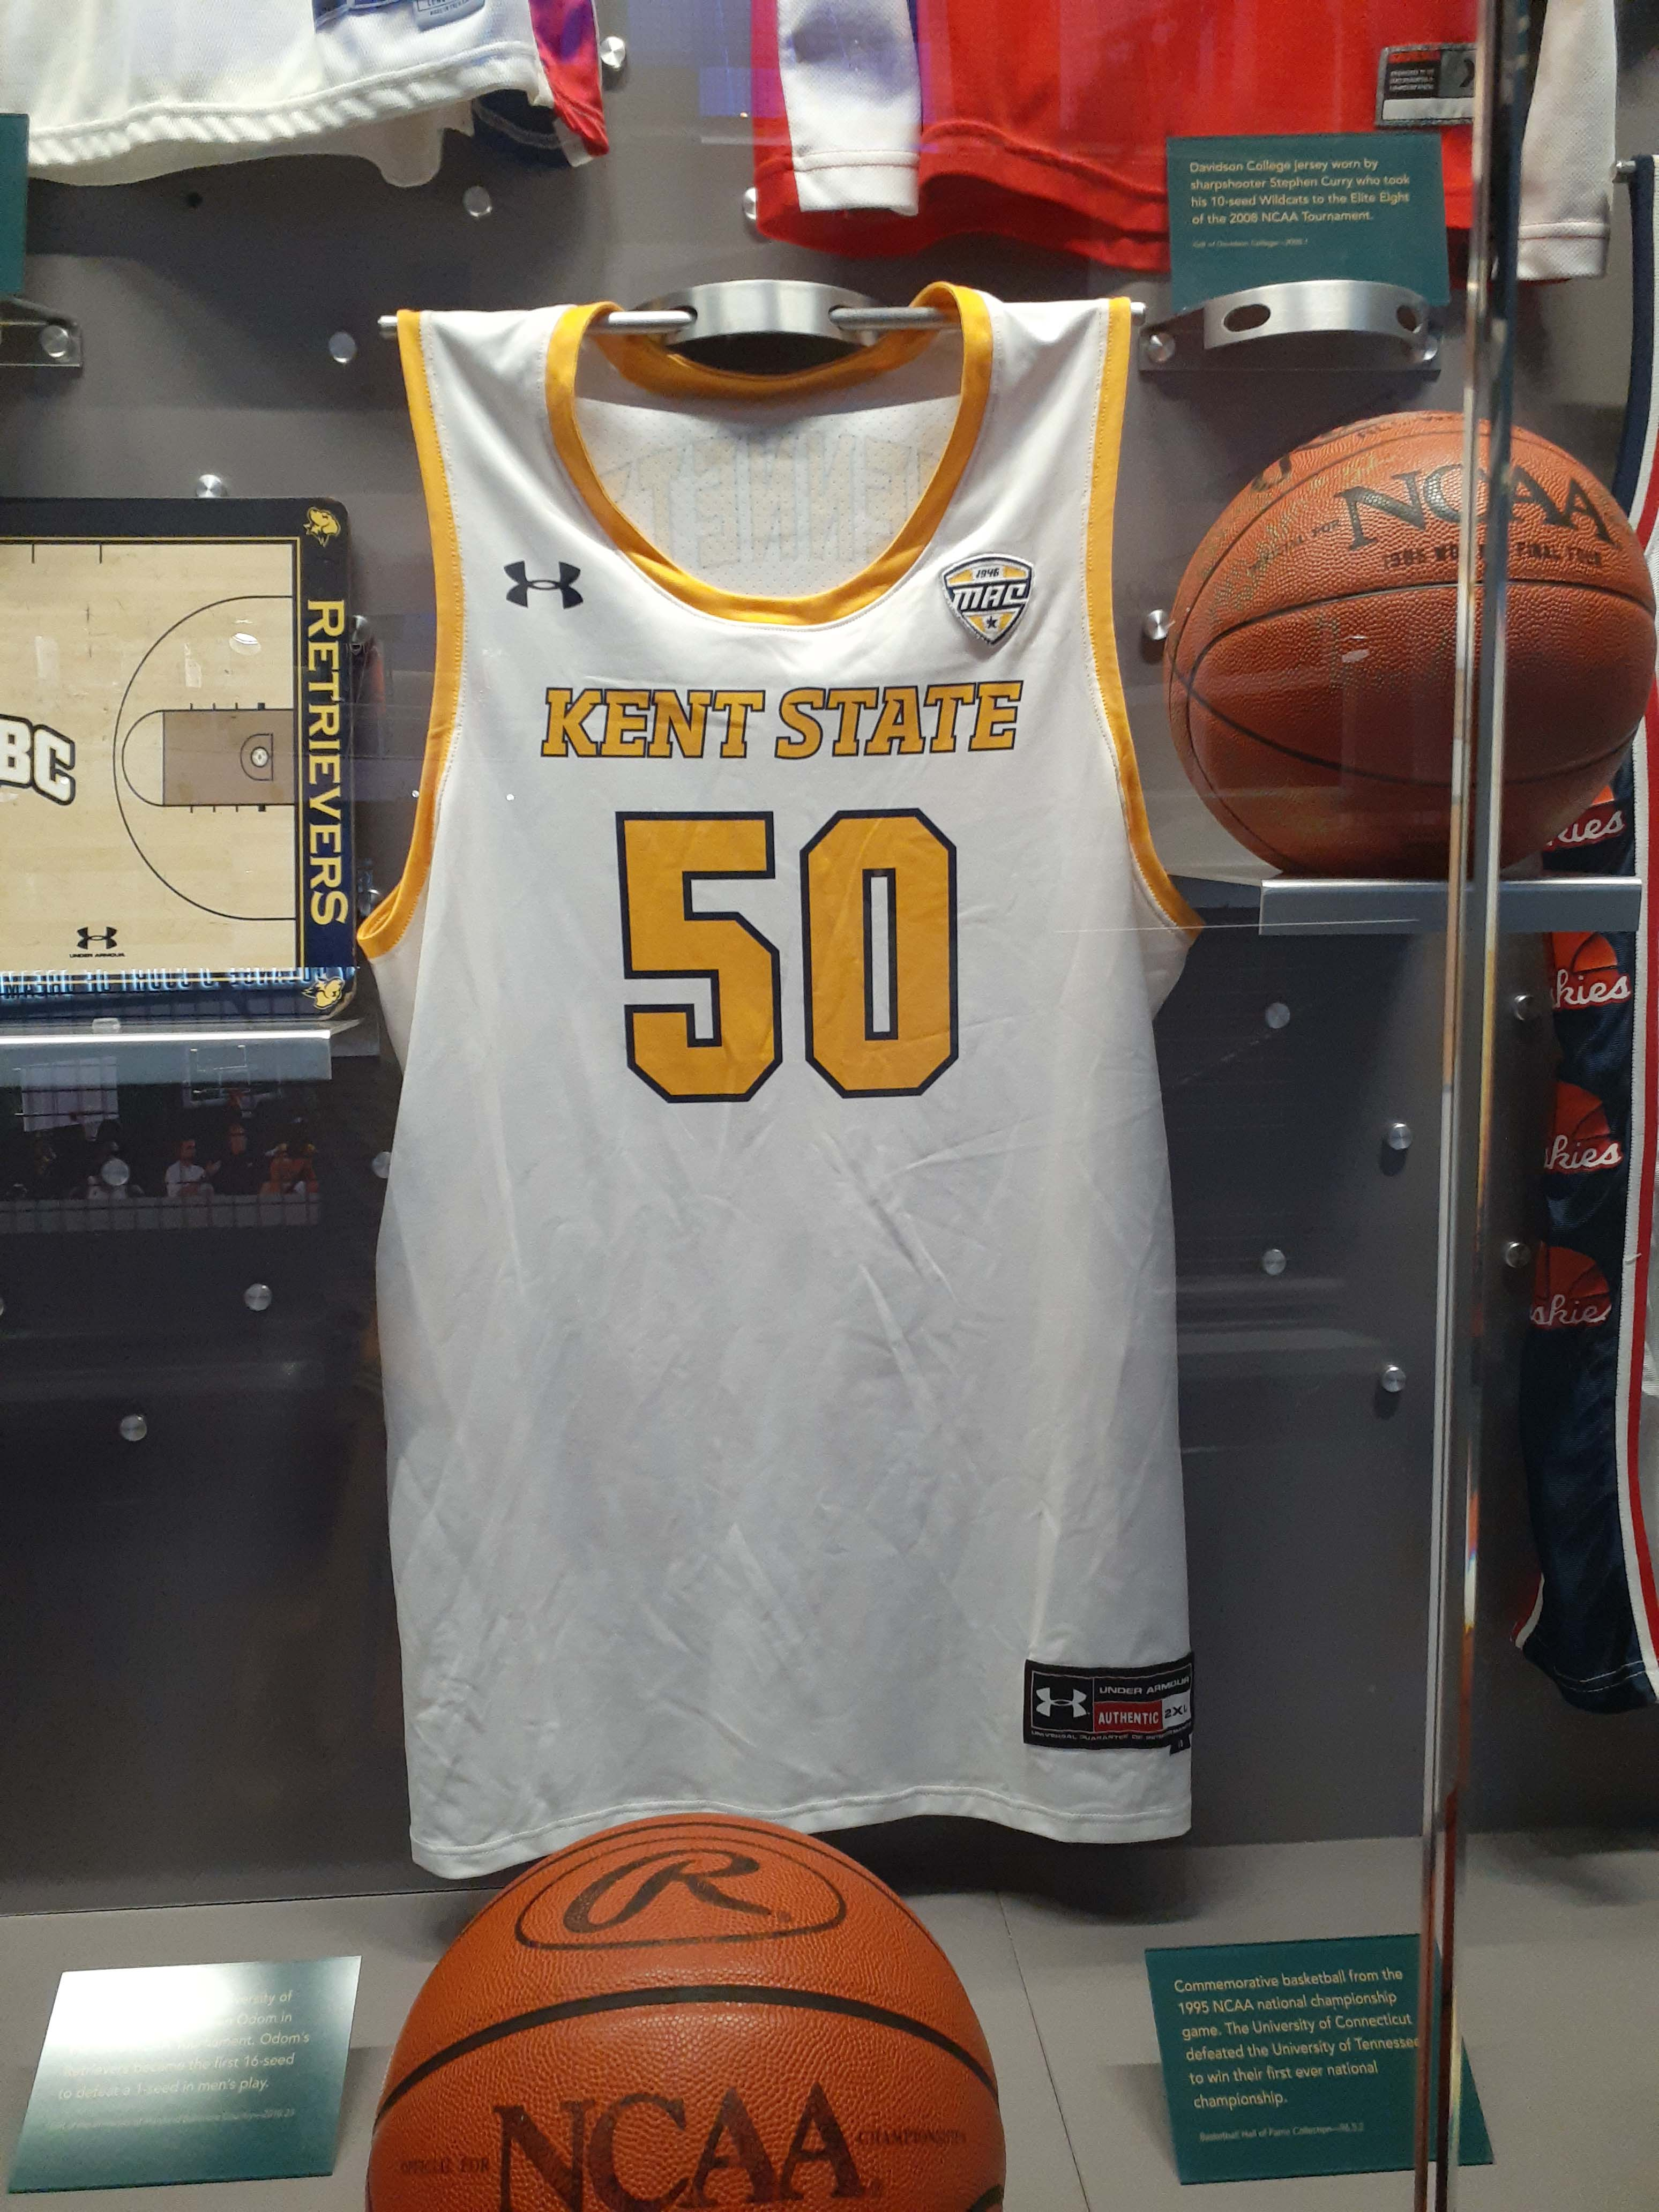 Kalin Bennett's Jersey on display at the Naismith Memorial Basketball Hall of Fame. (Photo courtesy of the Naismith Memorial Basketball Hall of Fame)